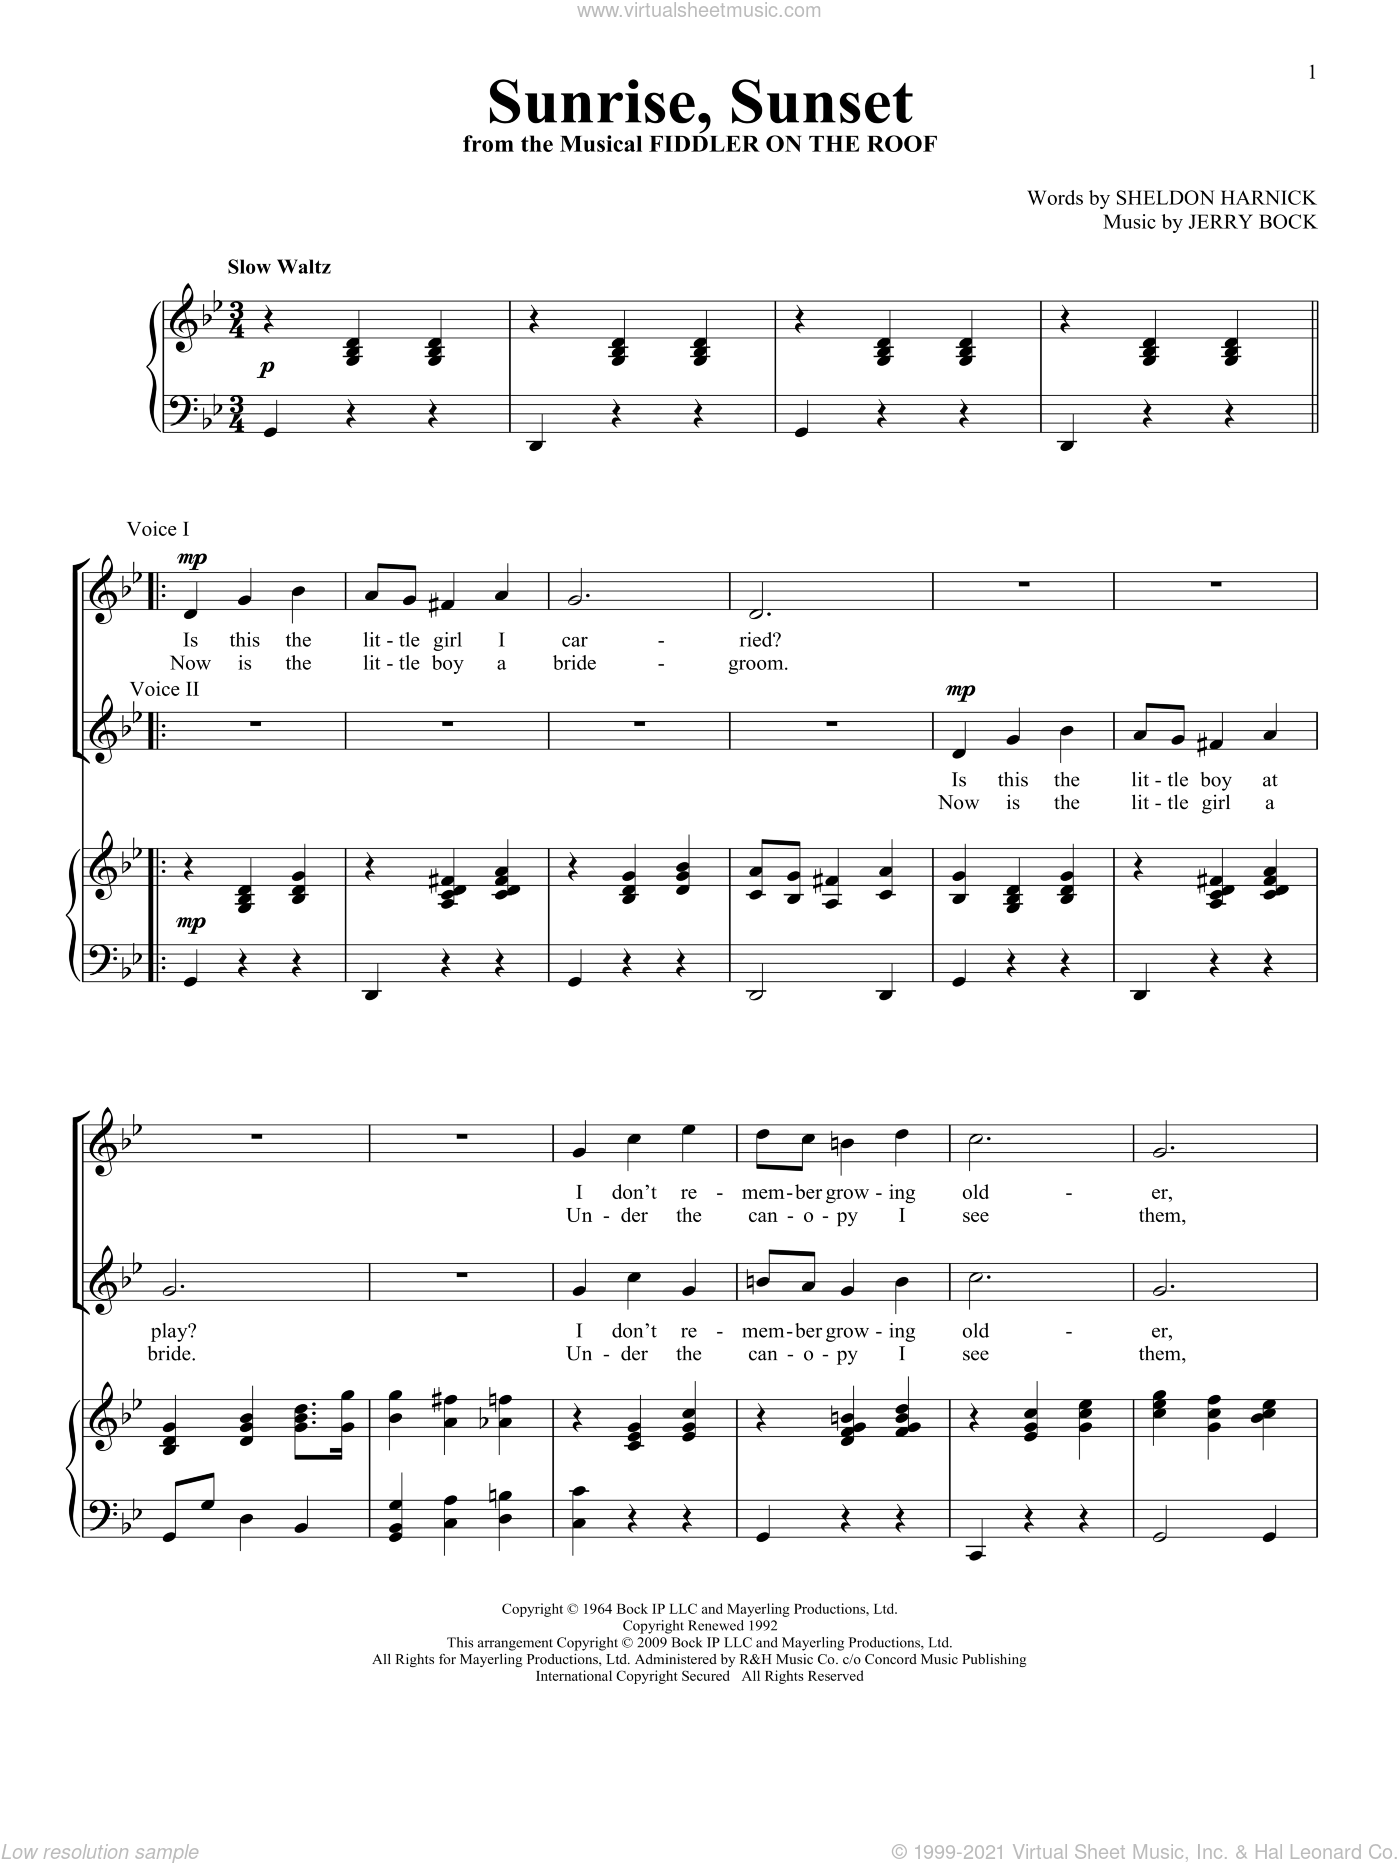 Sunrise, Sunset sheet music for two voices and piano by Sheldon Harnick and Jerry Bock, intermediate skill level